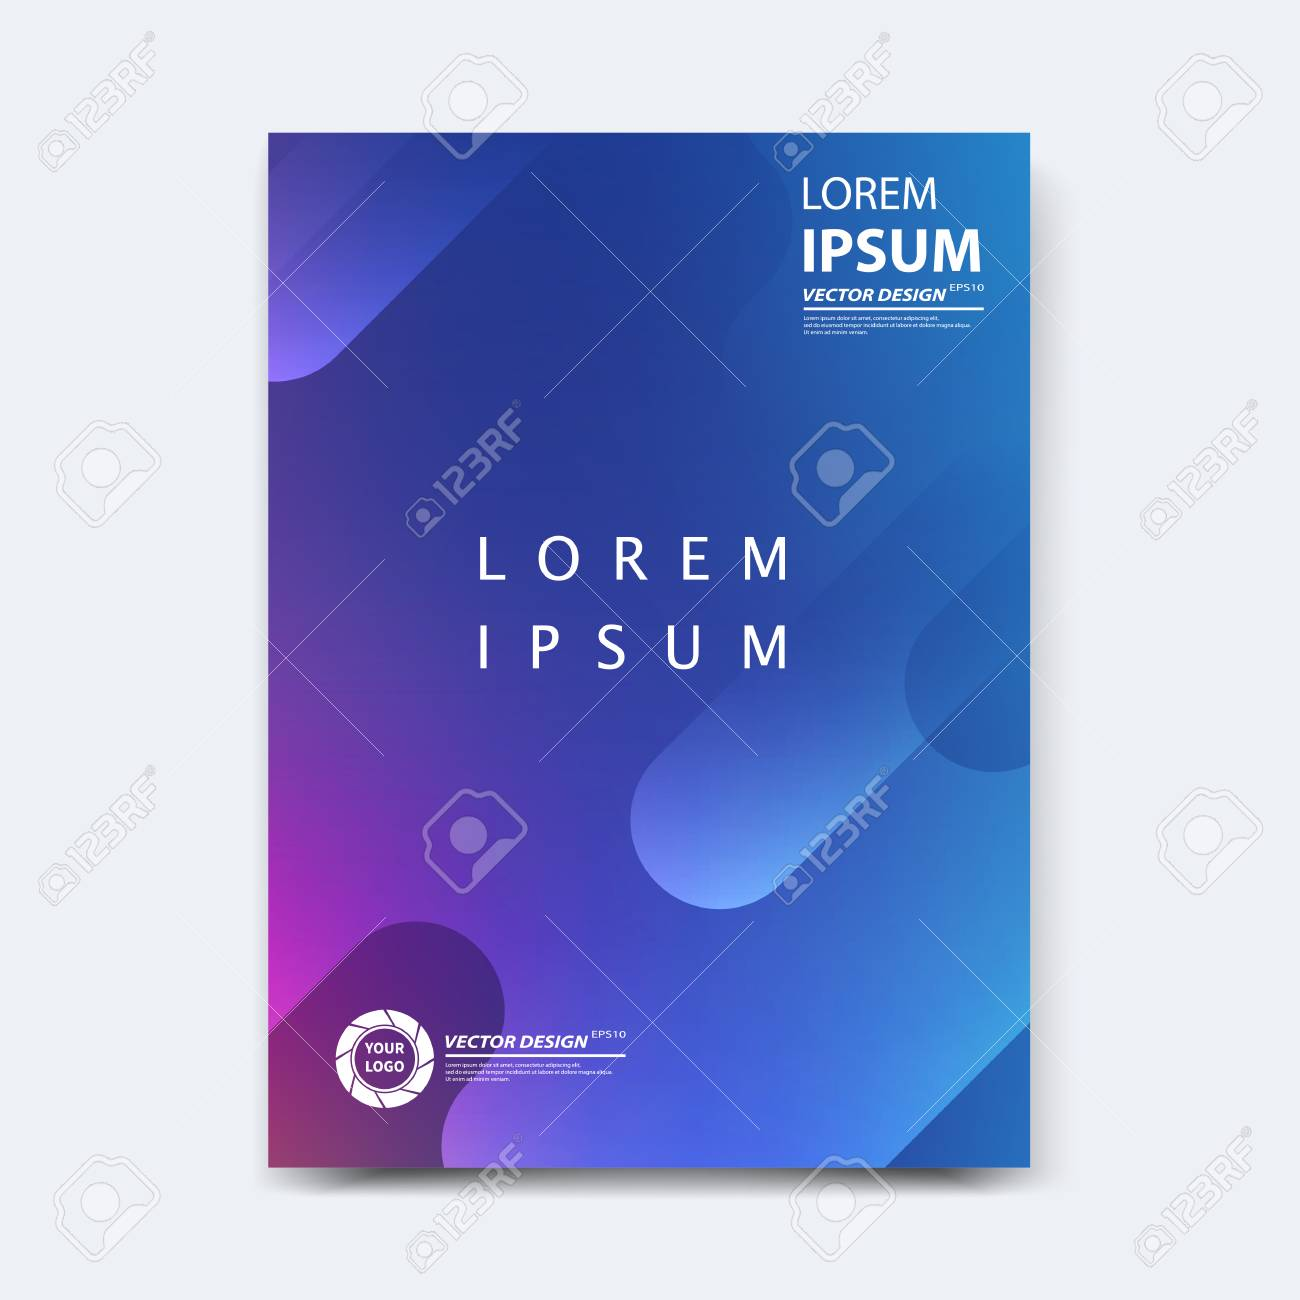 Abstract vector design for cover, poster, banner, flyer, business card, magazine annual report, title page, brochure template layout or booklet .A4 size with geometric shapes on white background. - 104581712